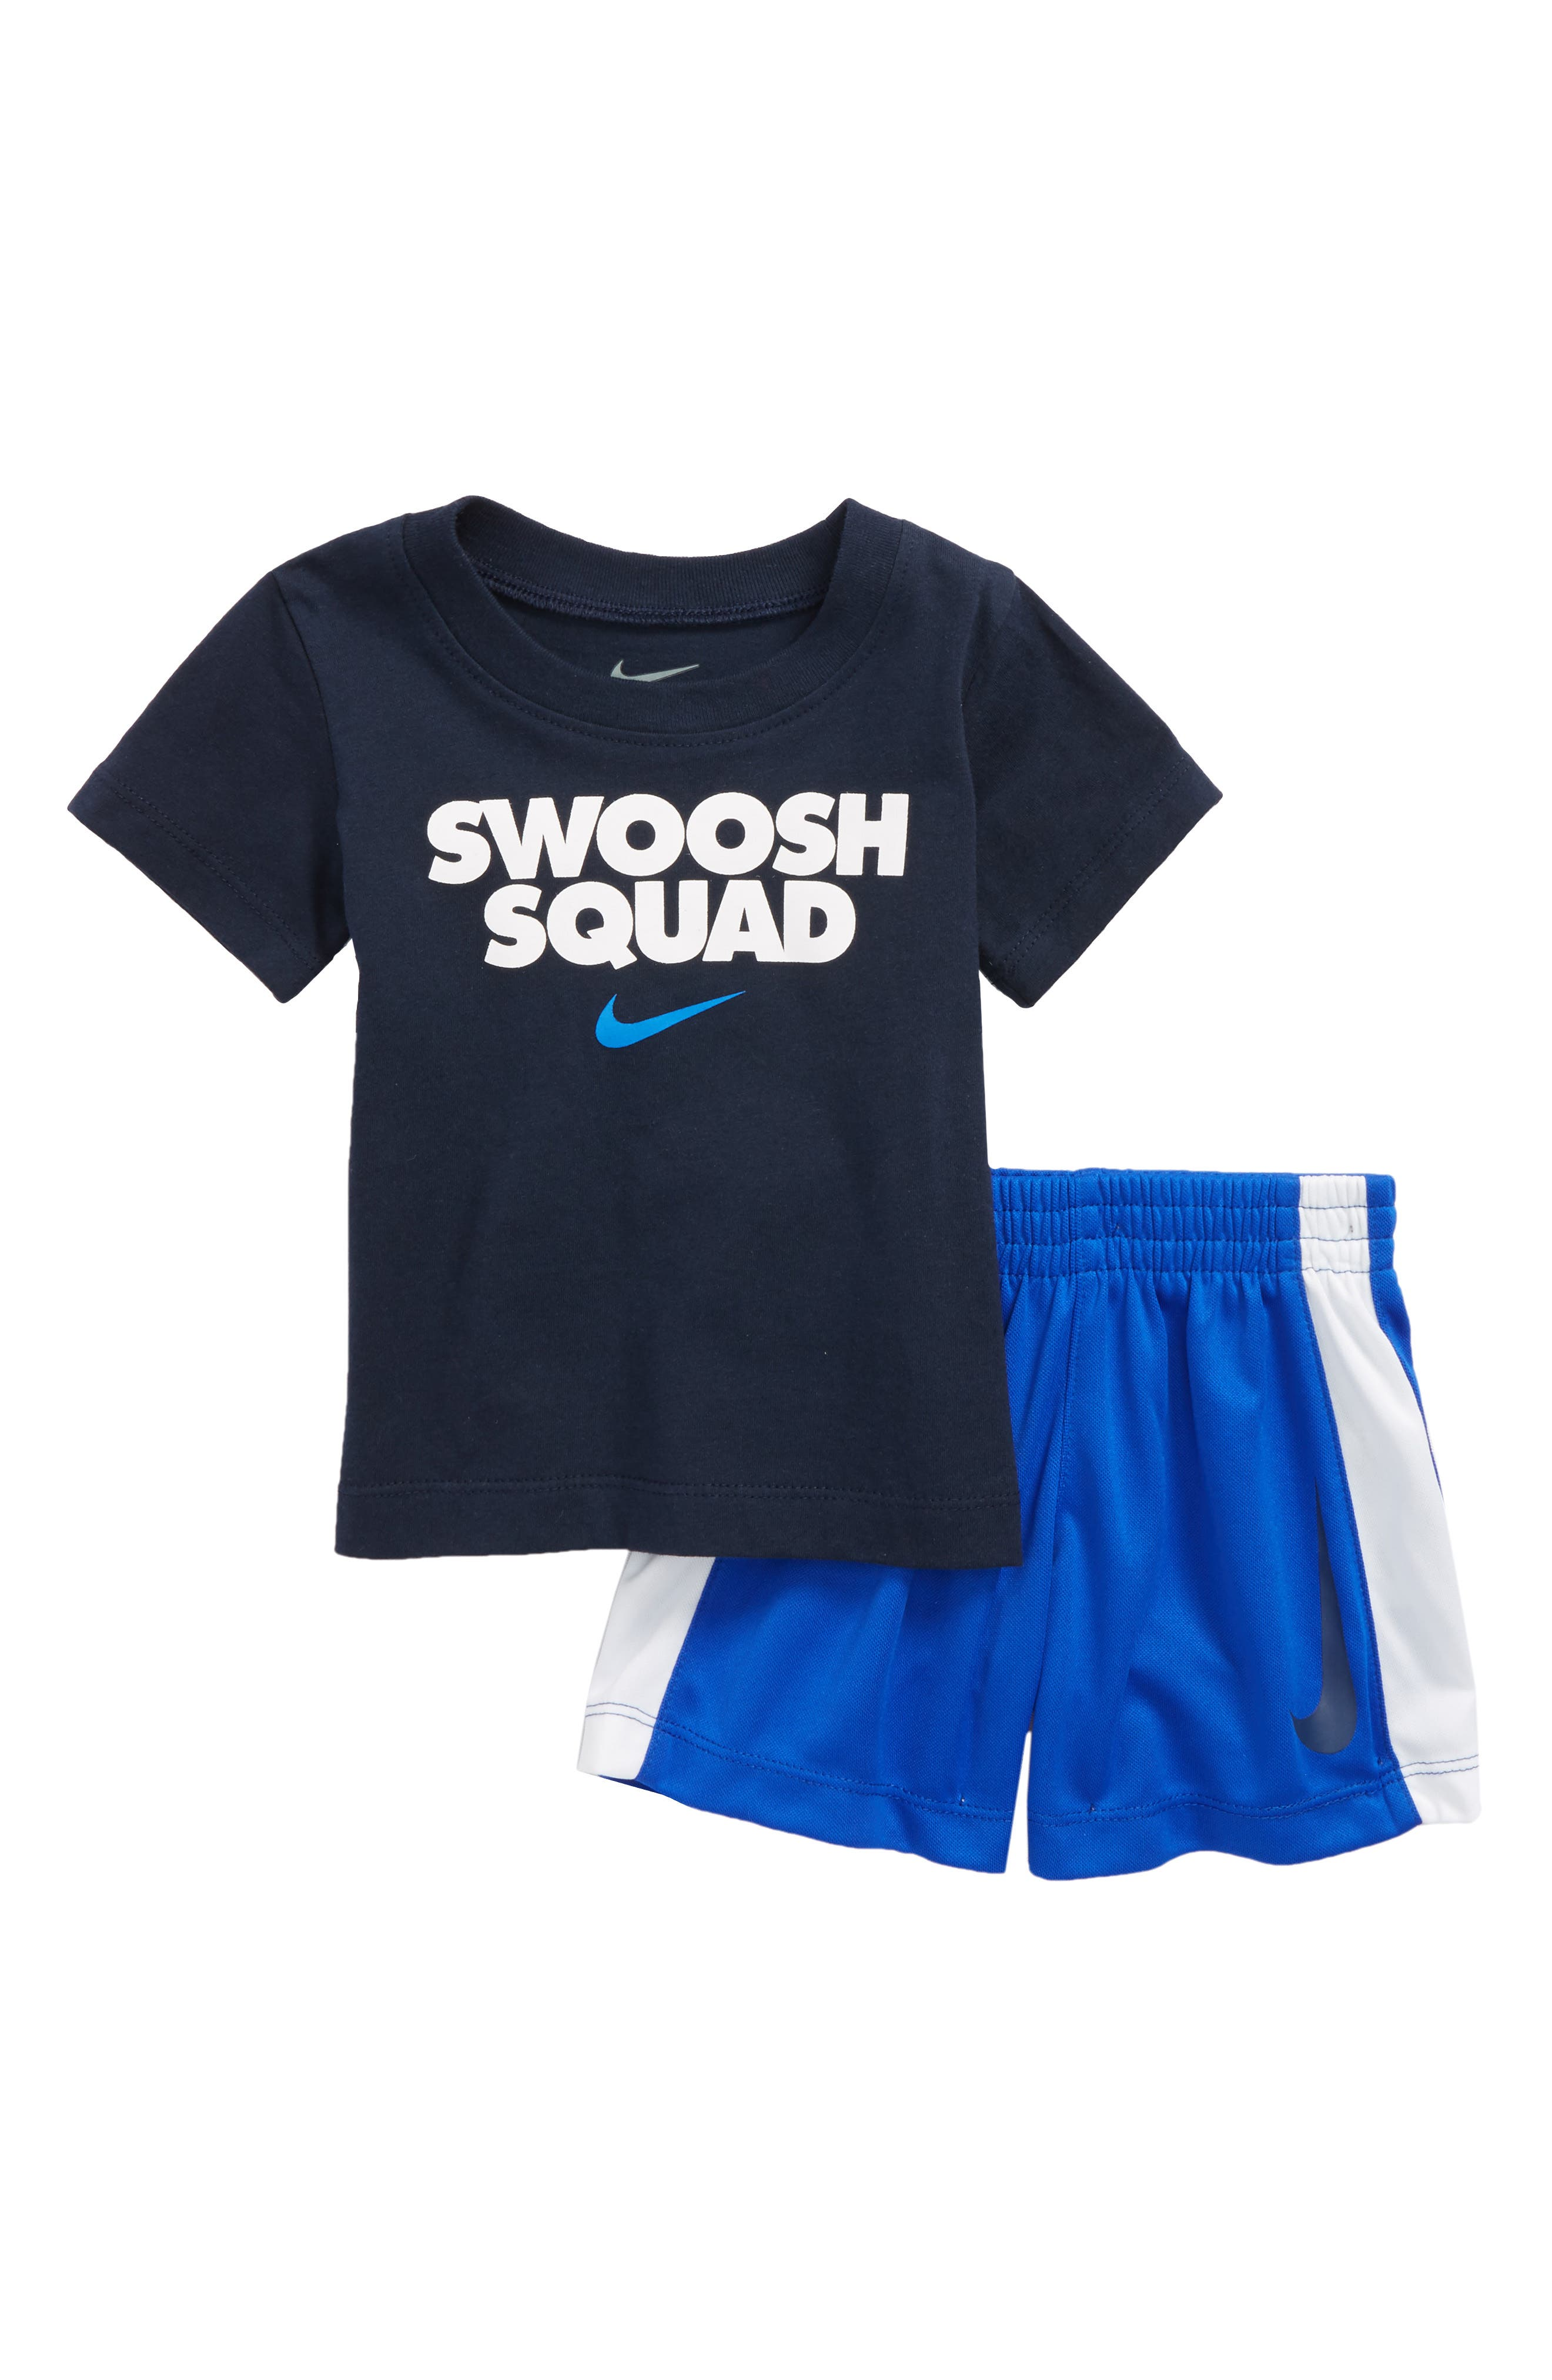 Swoosh Squad T-Shirt & Shorts Set,                             Main thumbnail 1, color,                             Hyper Royal